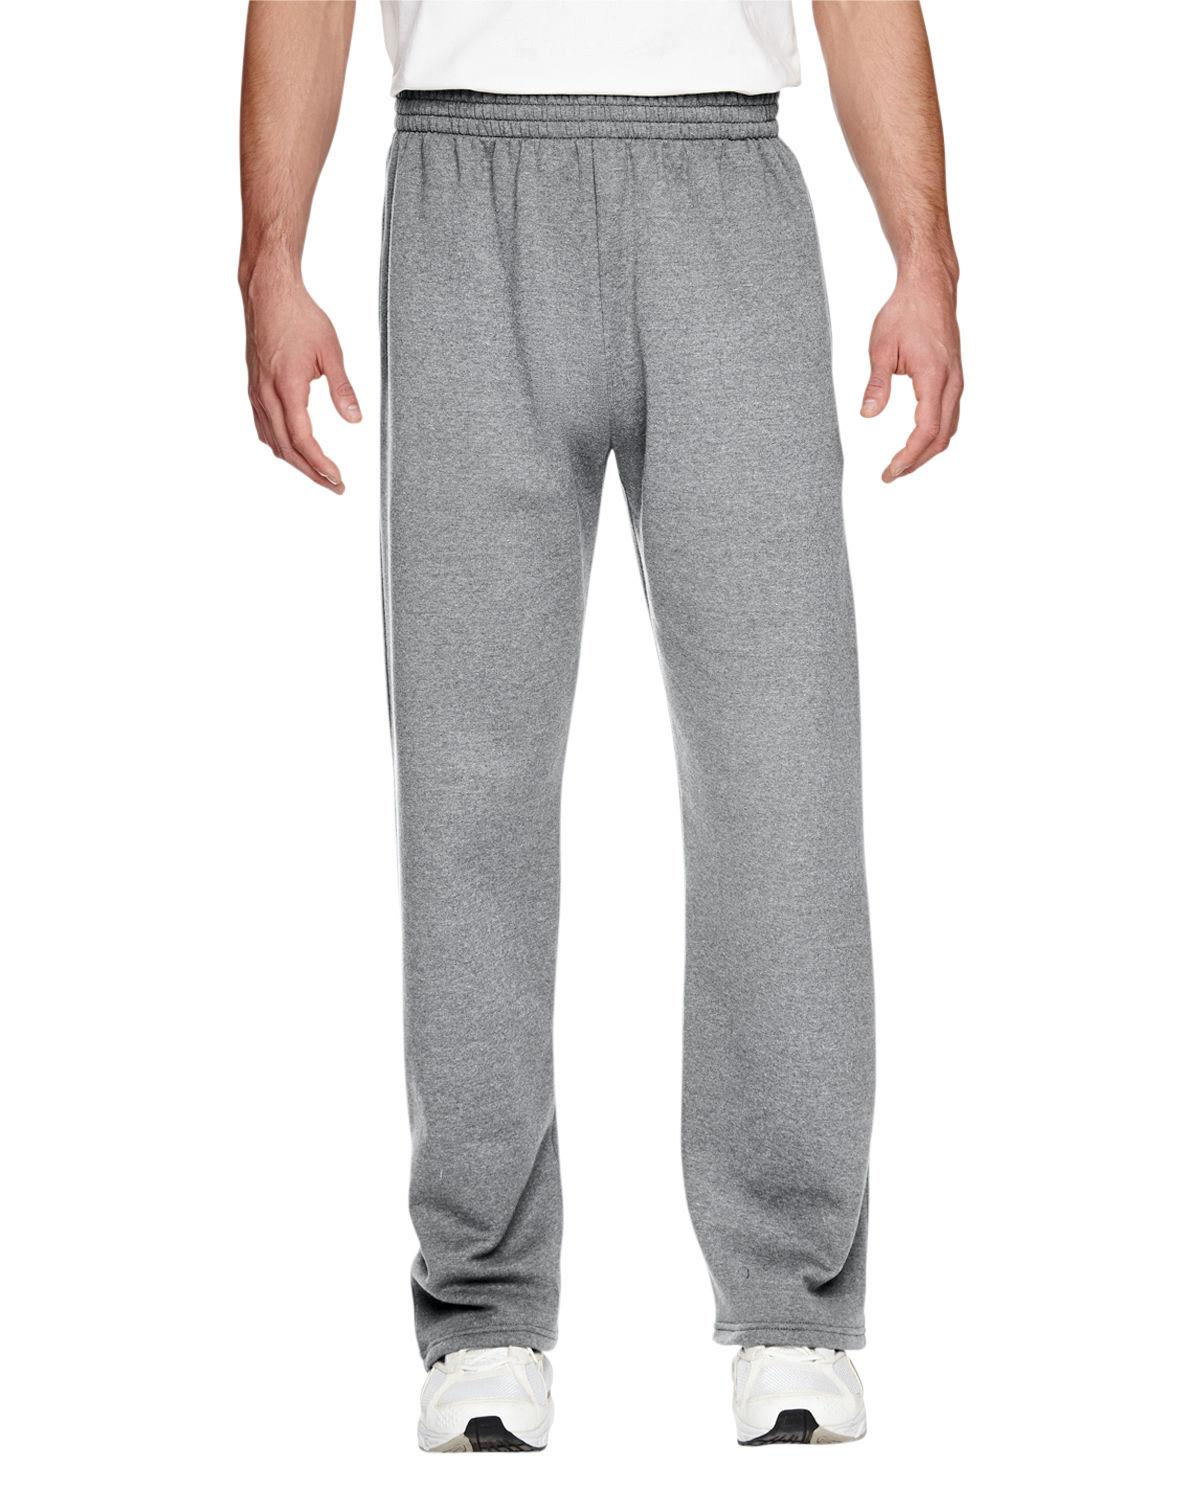 Fruit of - POCKET Sweatpants, S-XL, 2XL